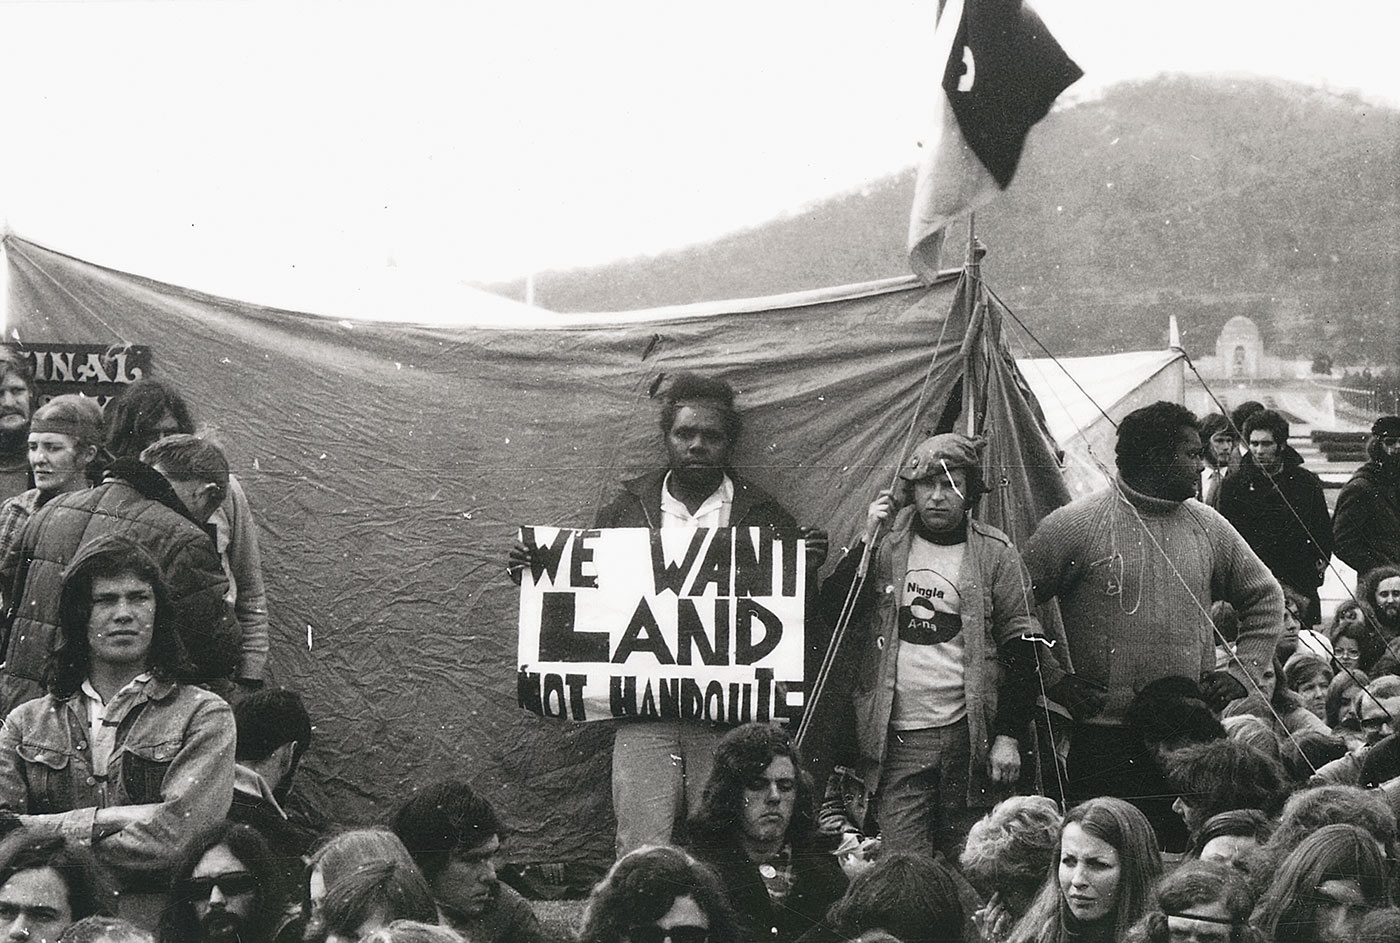 1976: Australian Government passes Aboriginal Land Rights (Northern Territory) Act (National Museum of Australia, n.d.)